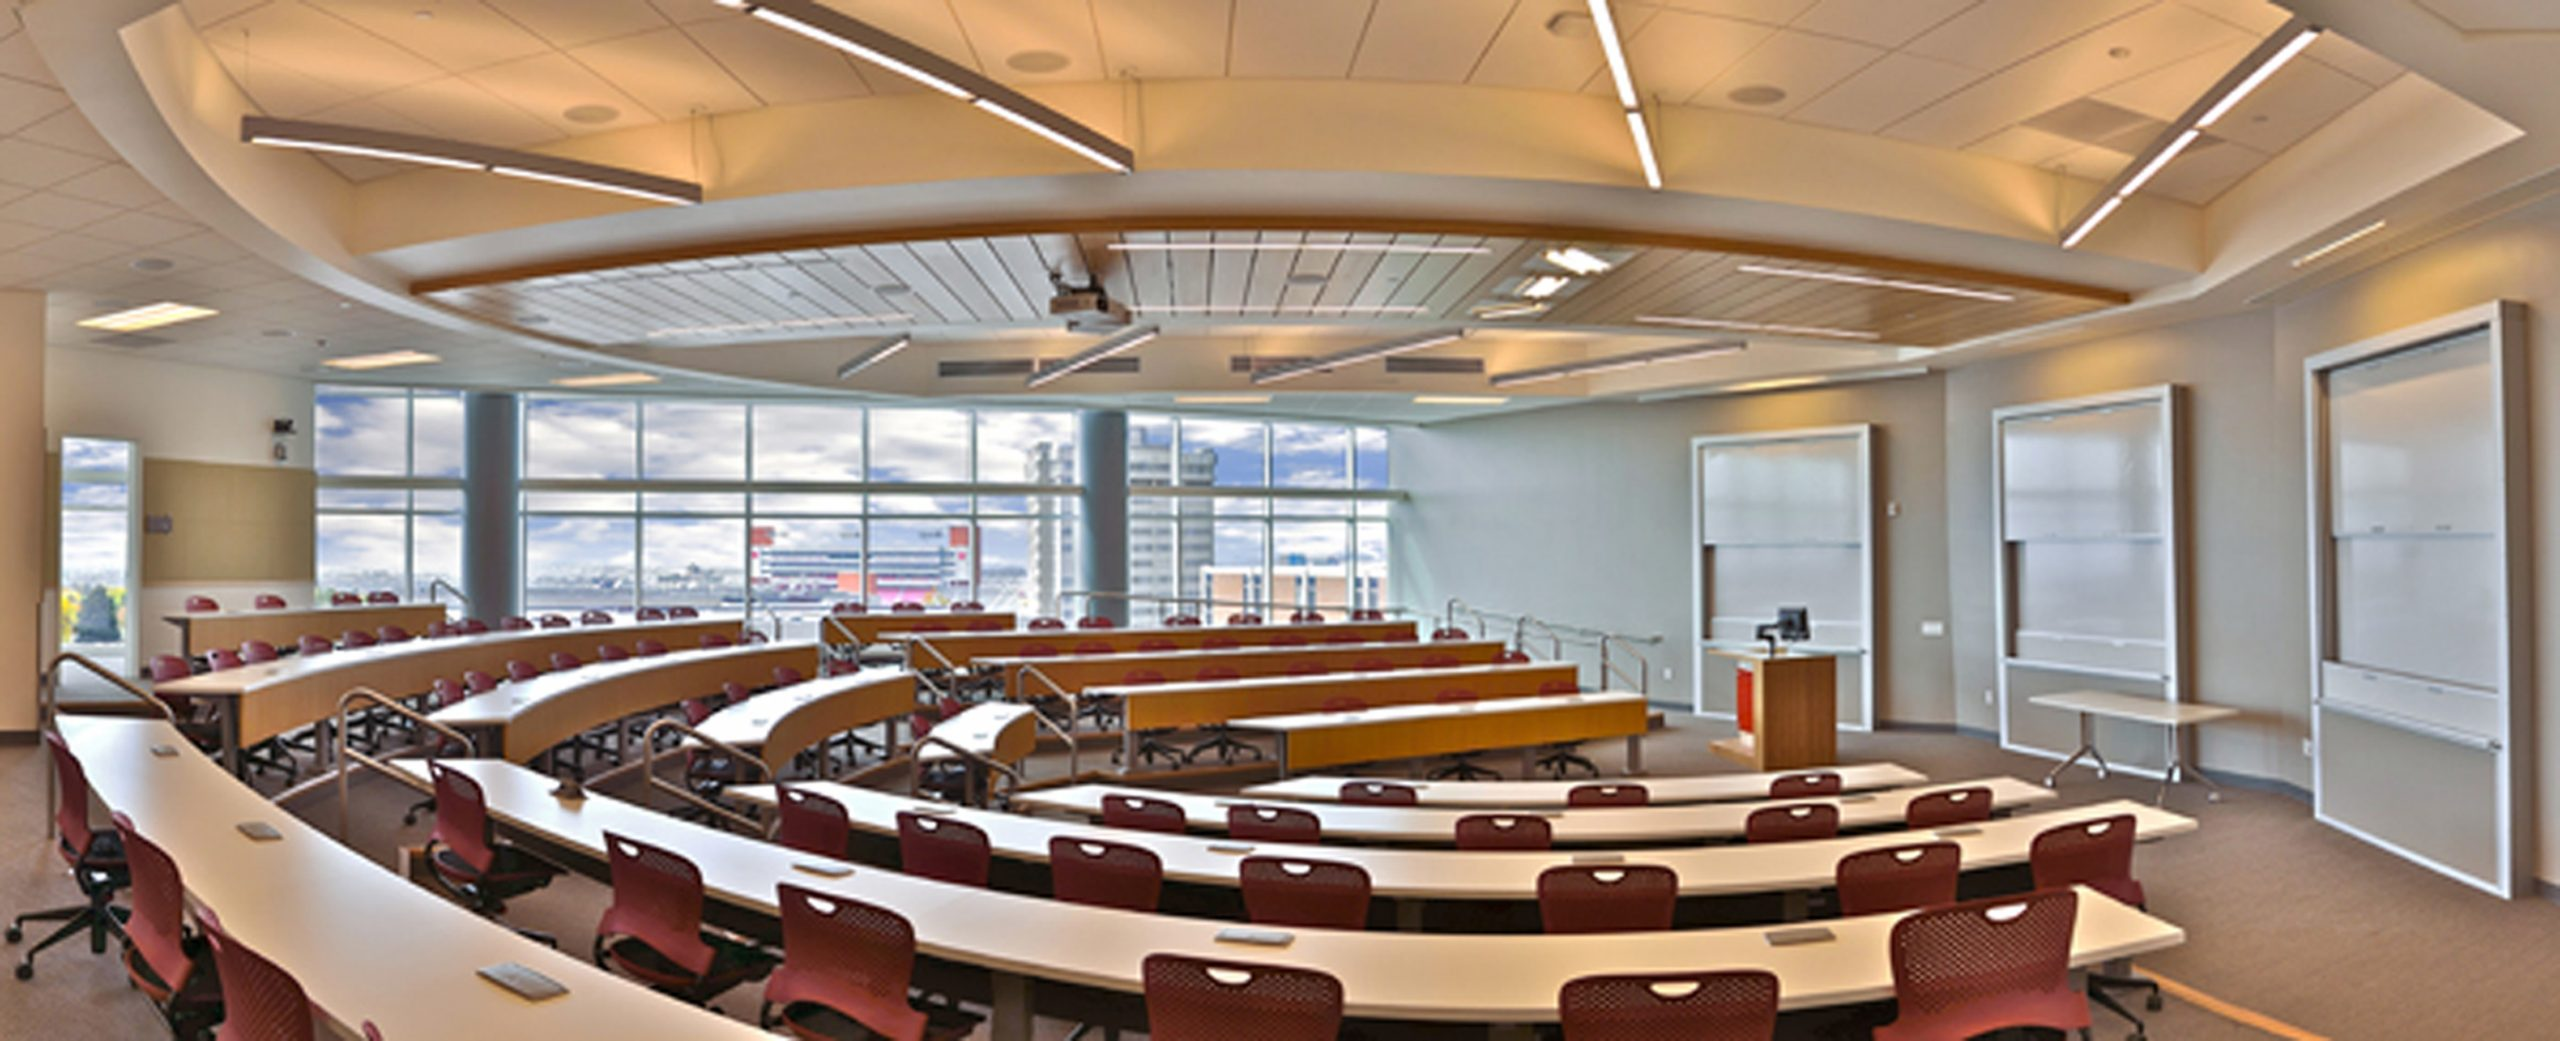 Classroom in the new Spencer Fox Eccles Business Building at the David Eccles School of Business.